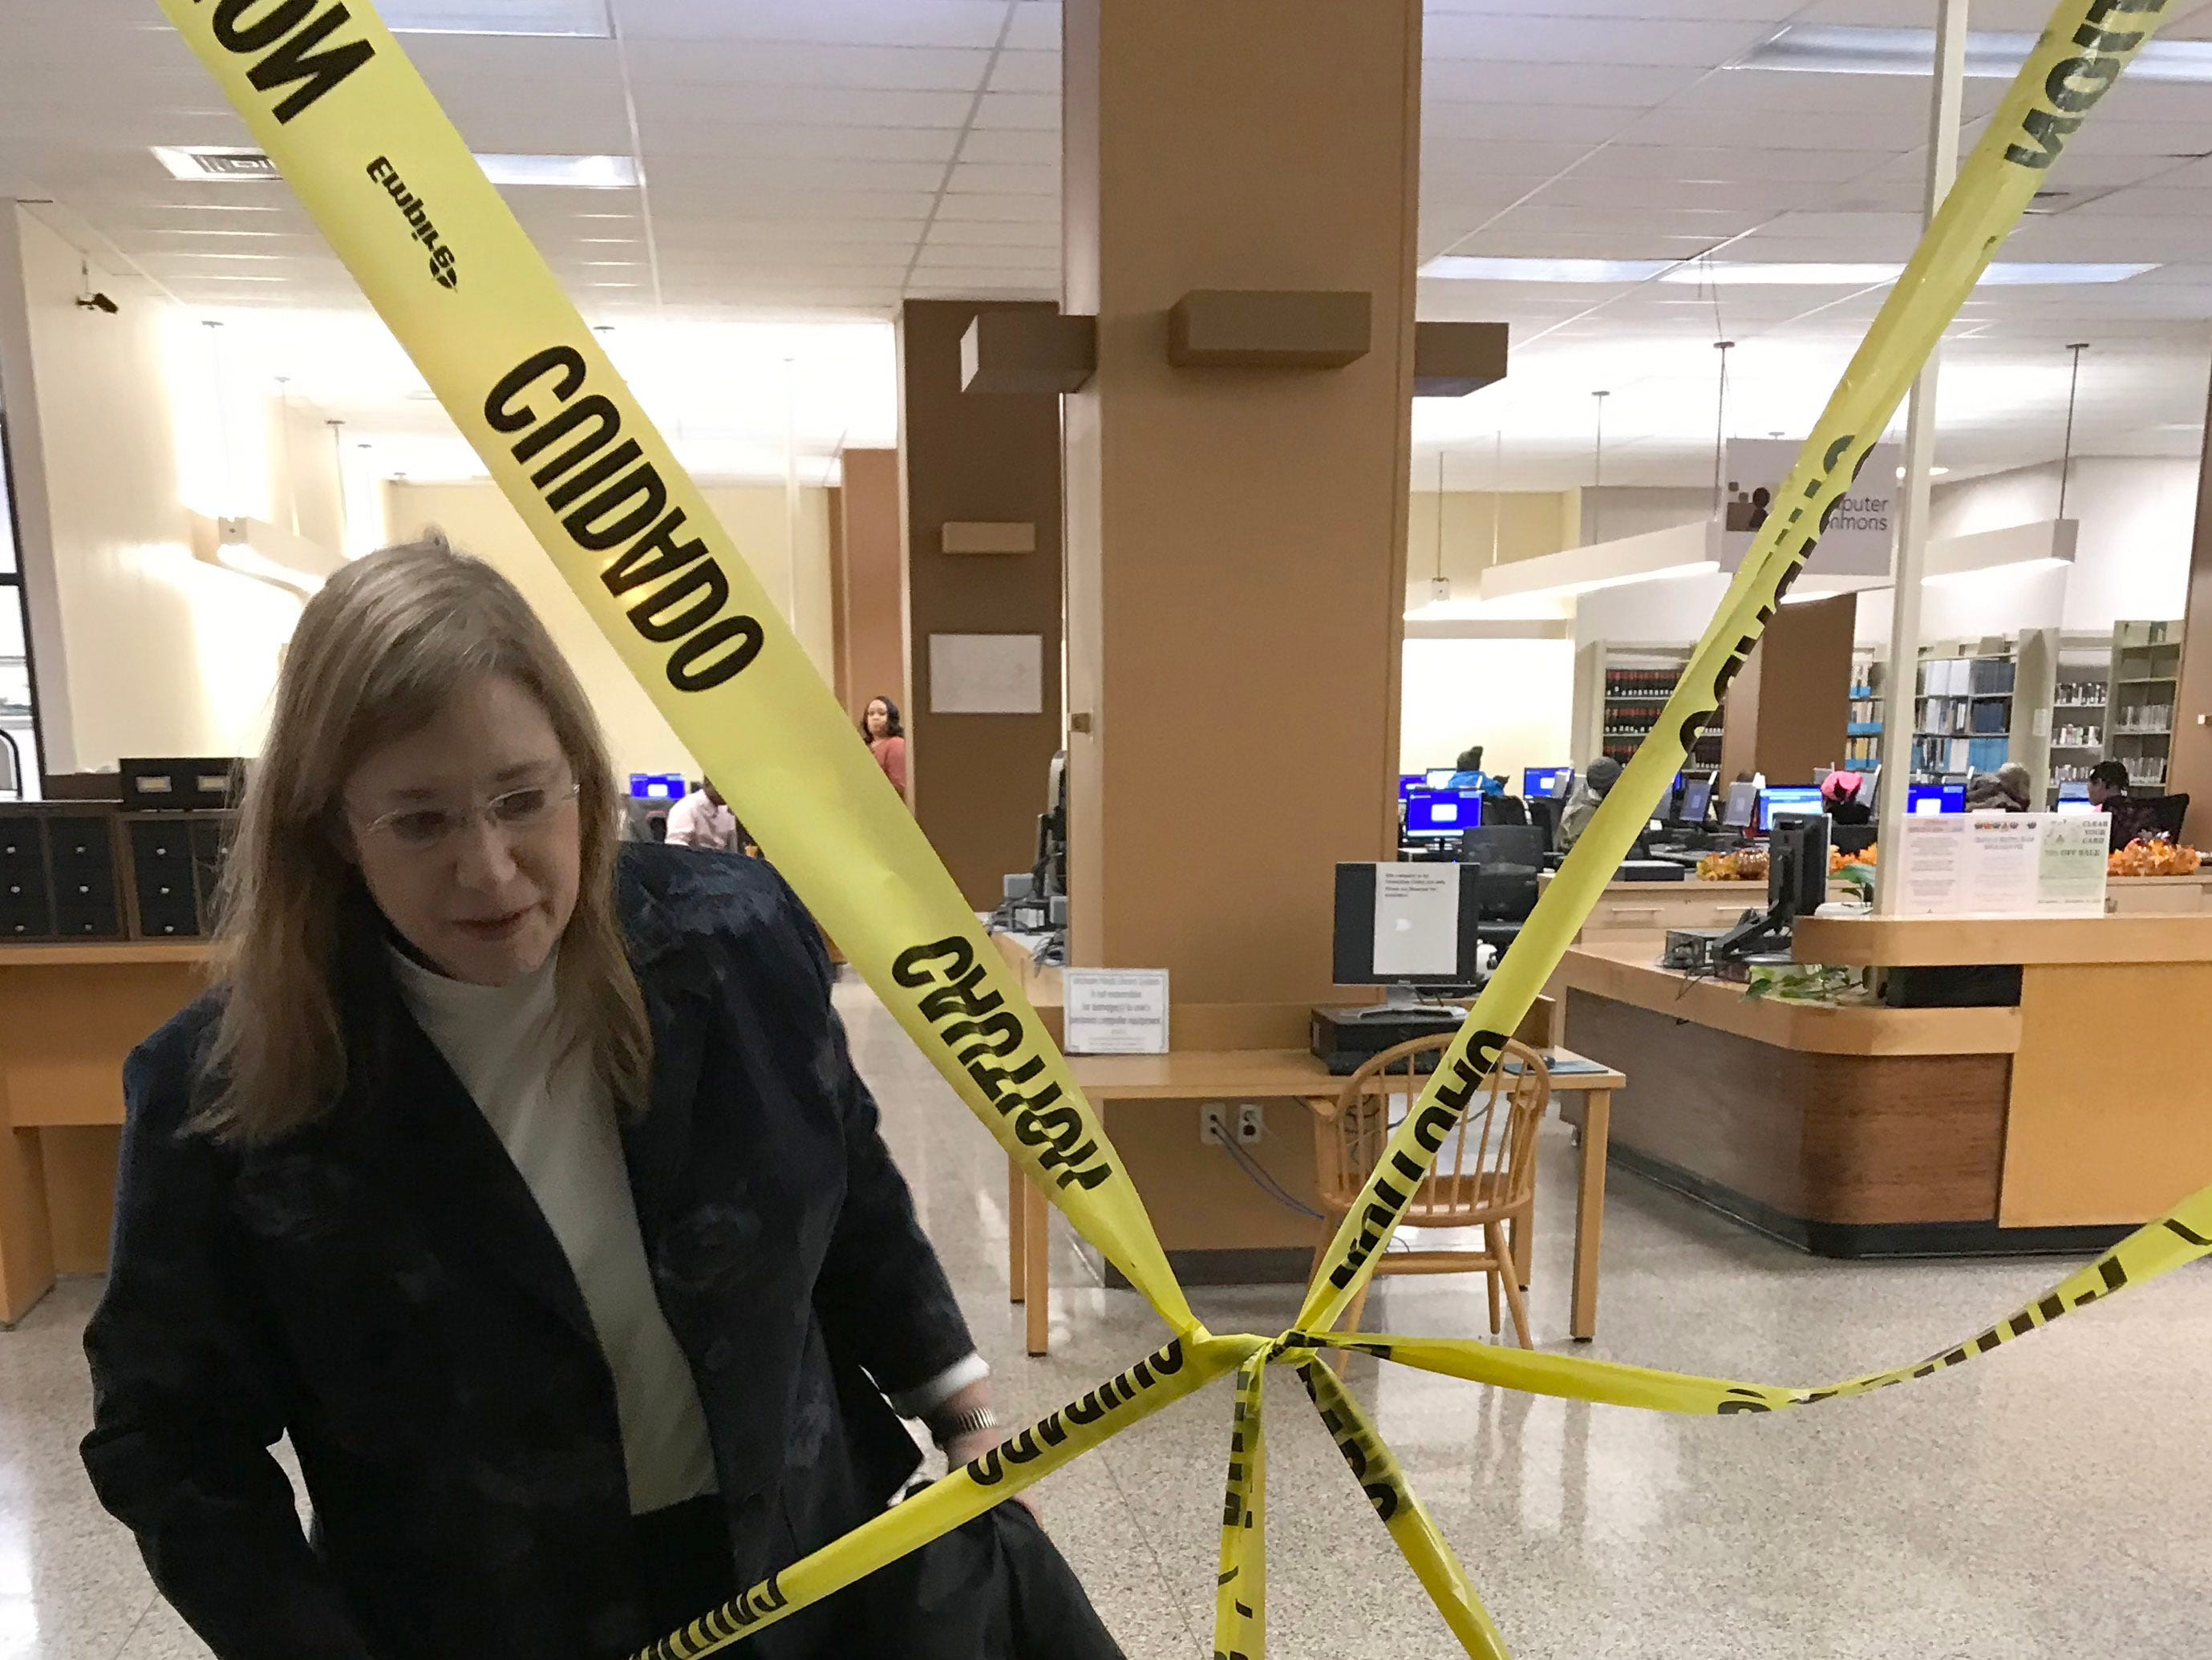 Hinds County Library System director Patty Furr pulls caution tape away from a stairwell doorway in the Eudora Welty branch of Jackson. The tape is meant to keep patrons away from upper floors damaged by the continued assault of leaking rain water and subsequent mold. Tuesday, Nov.13, 2018.